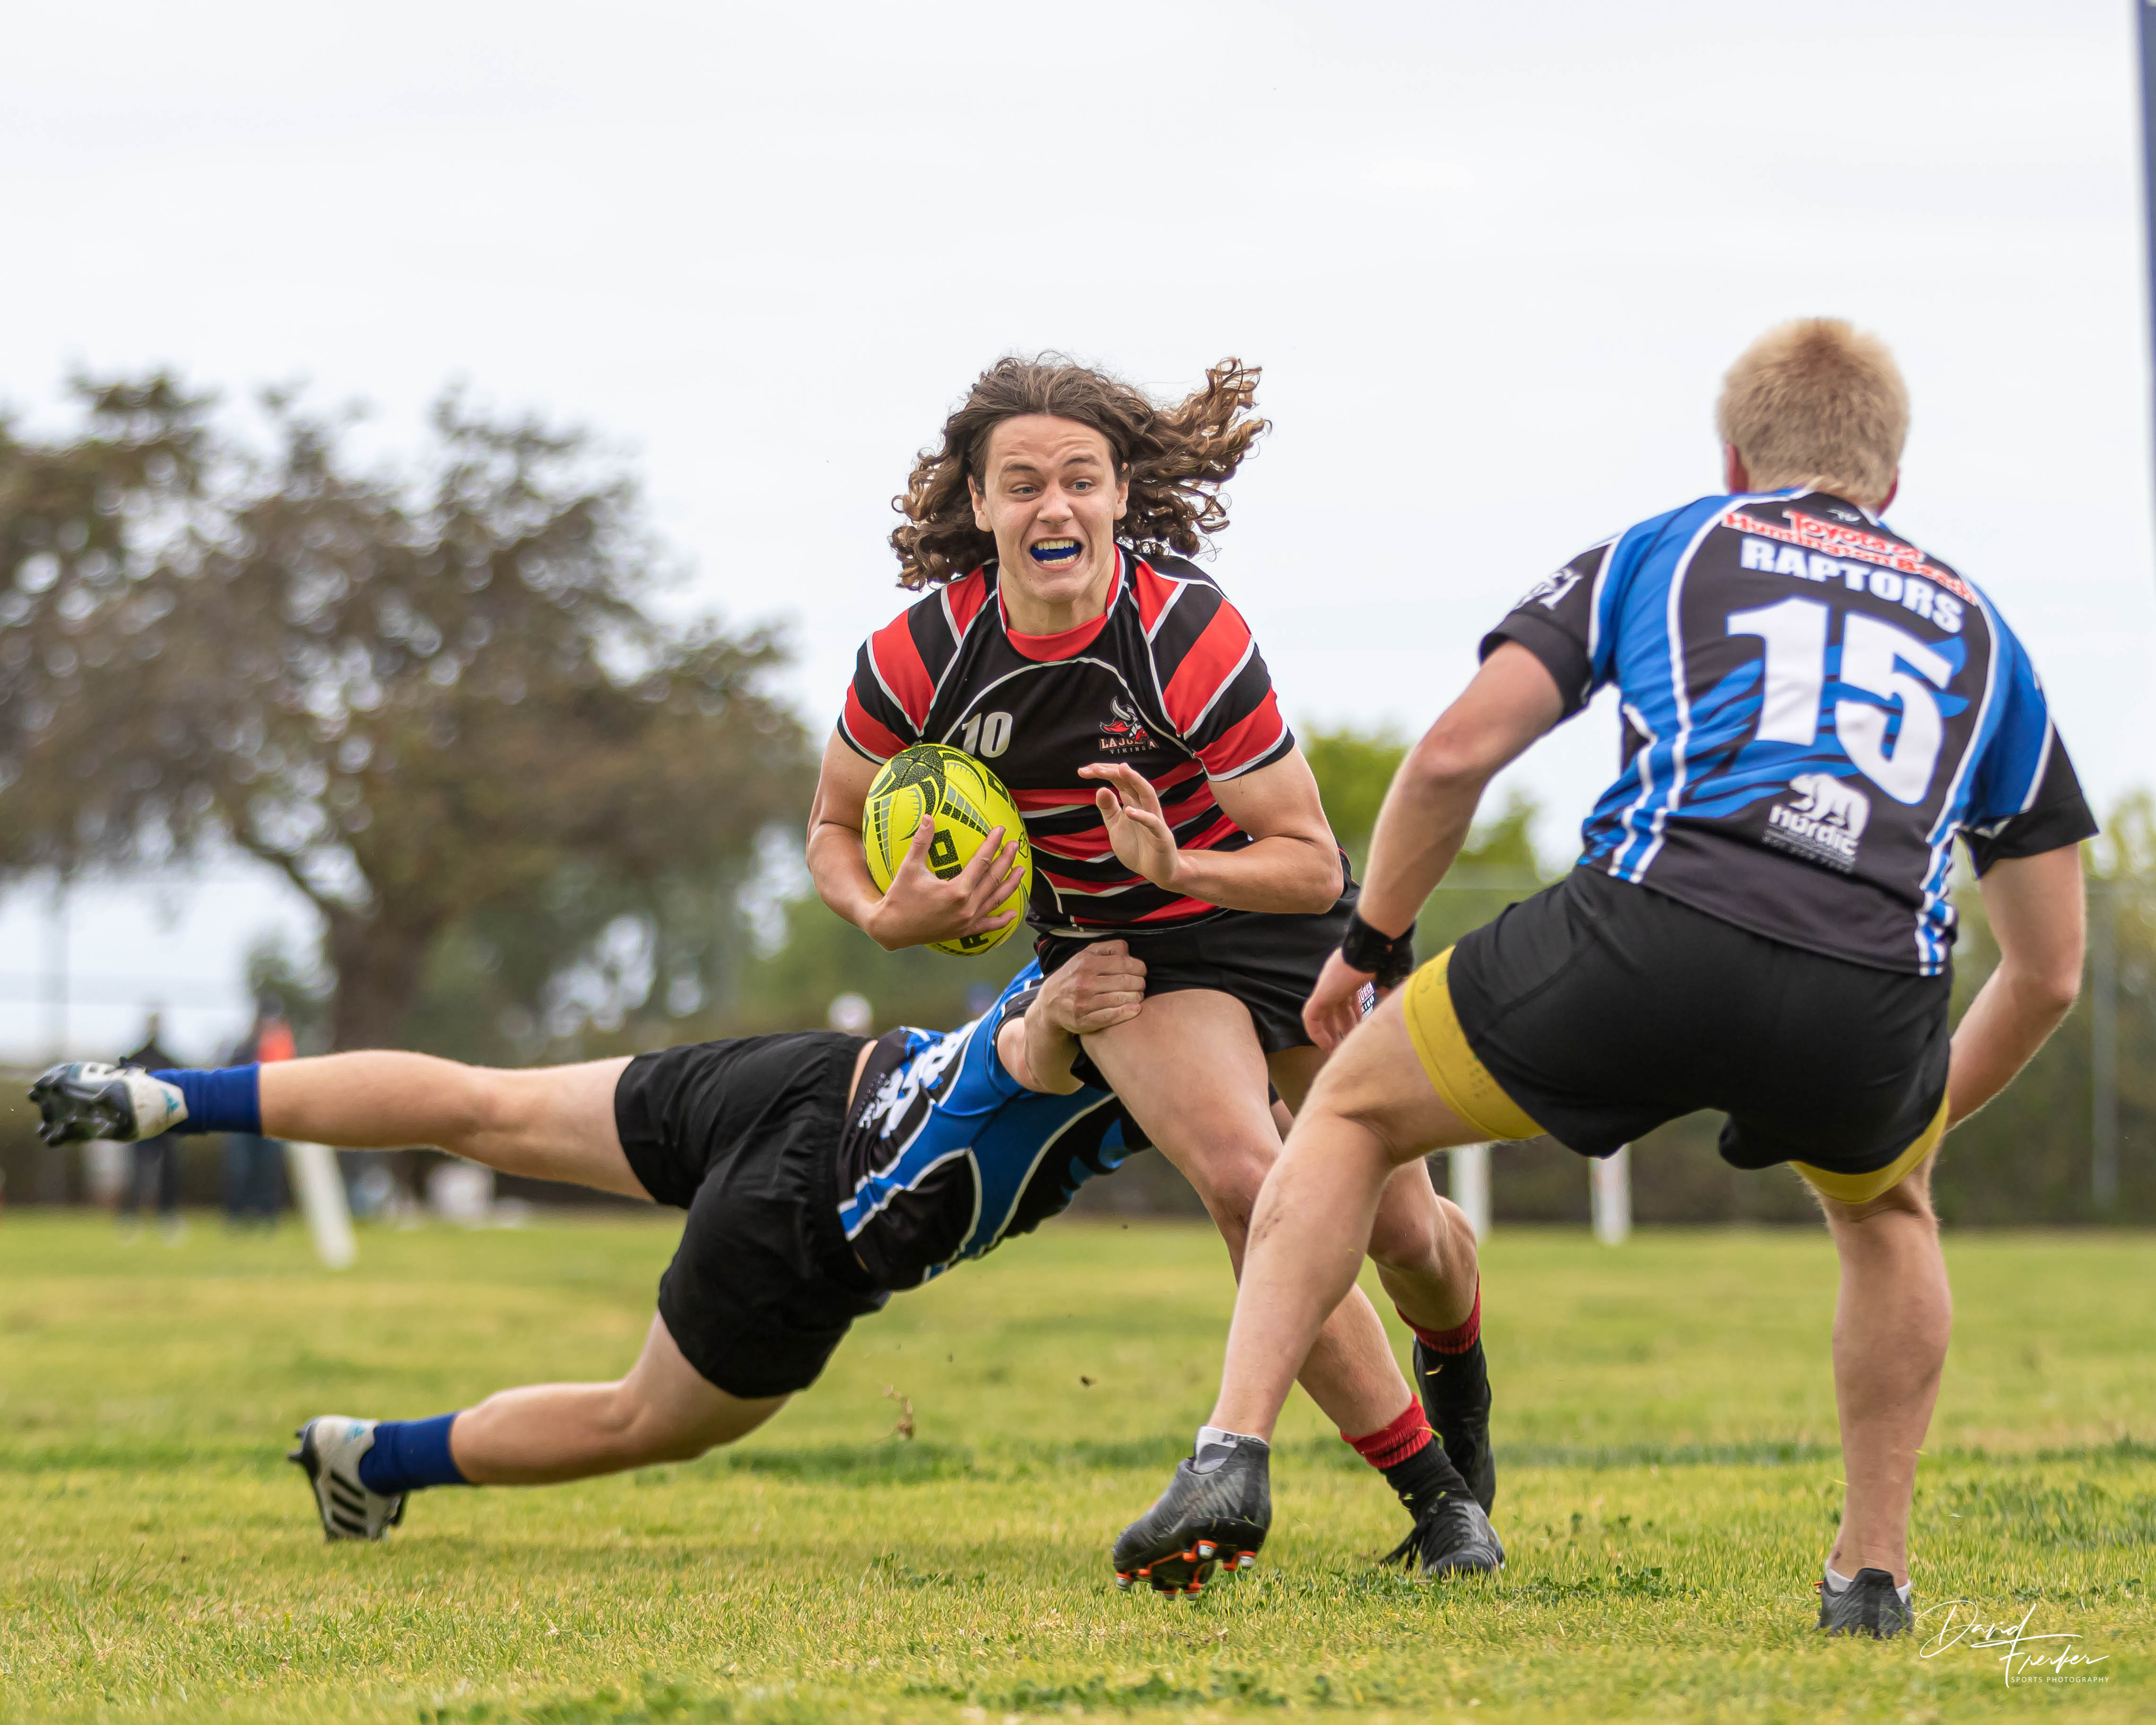 LaJollaRugby20